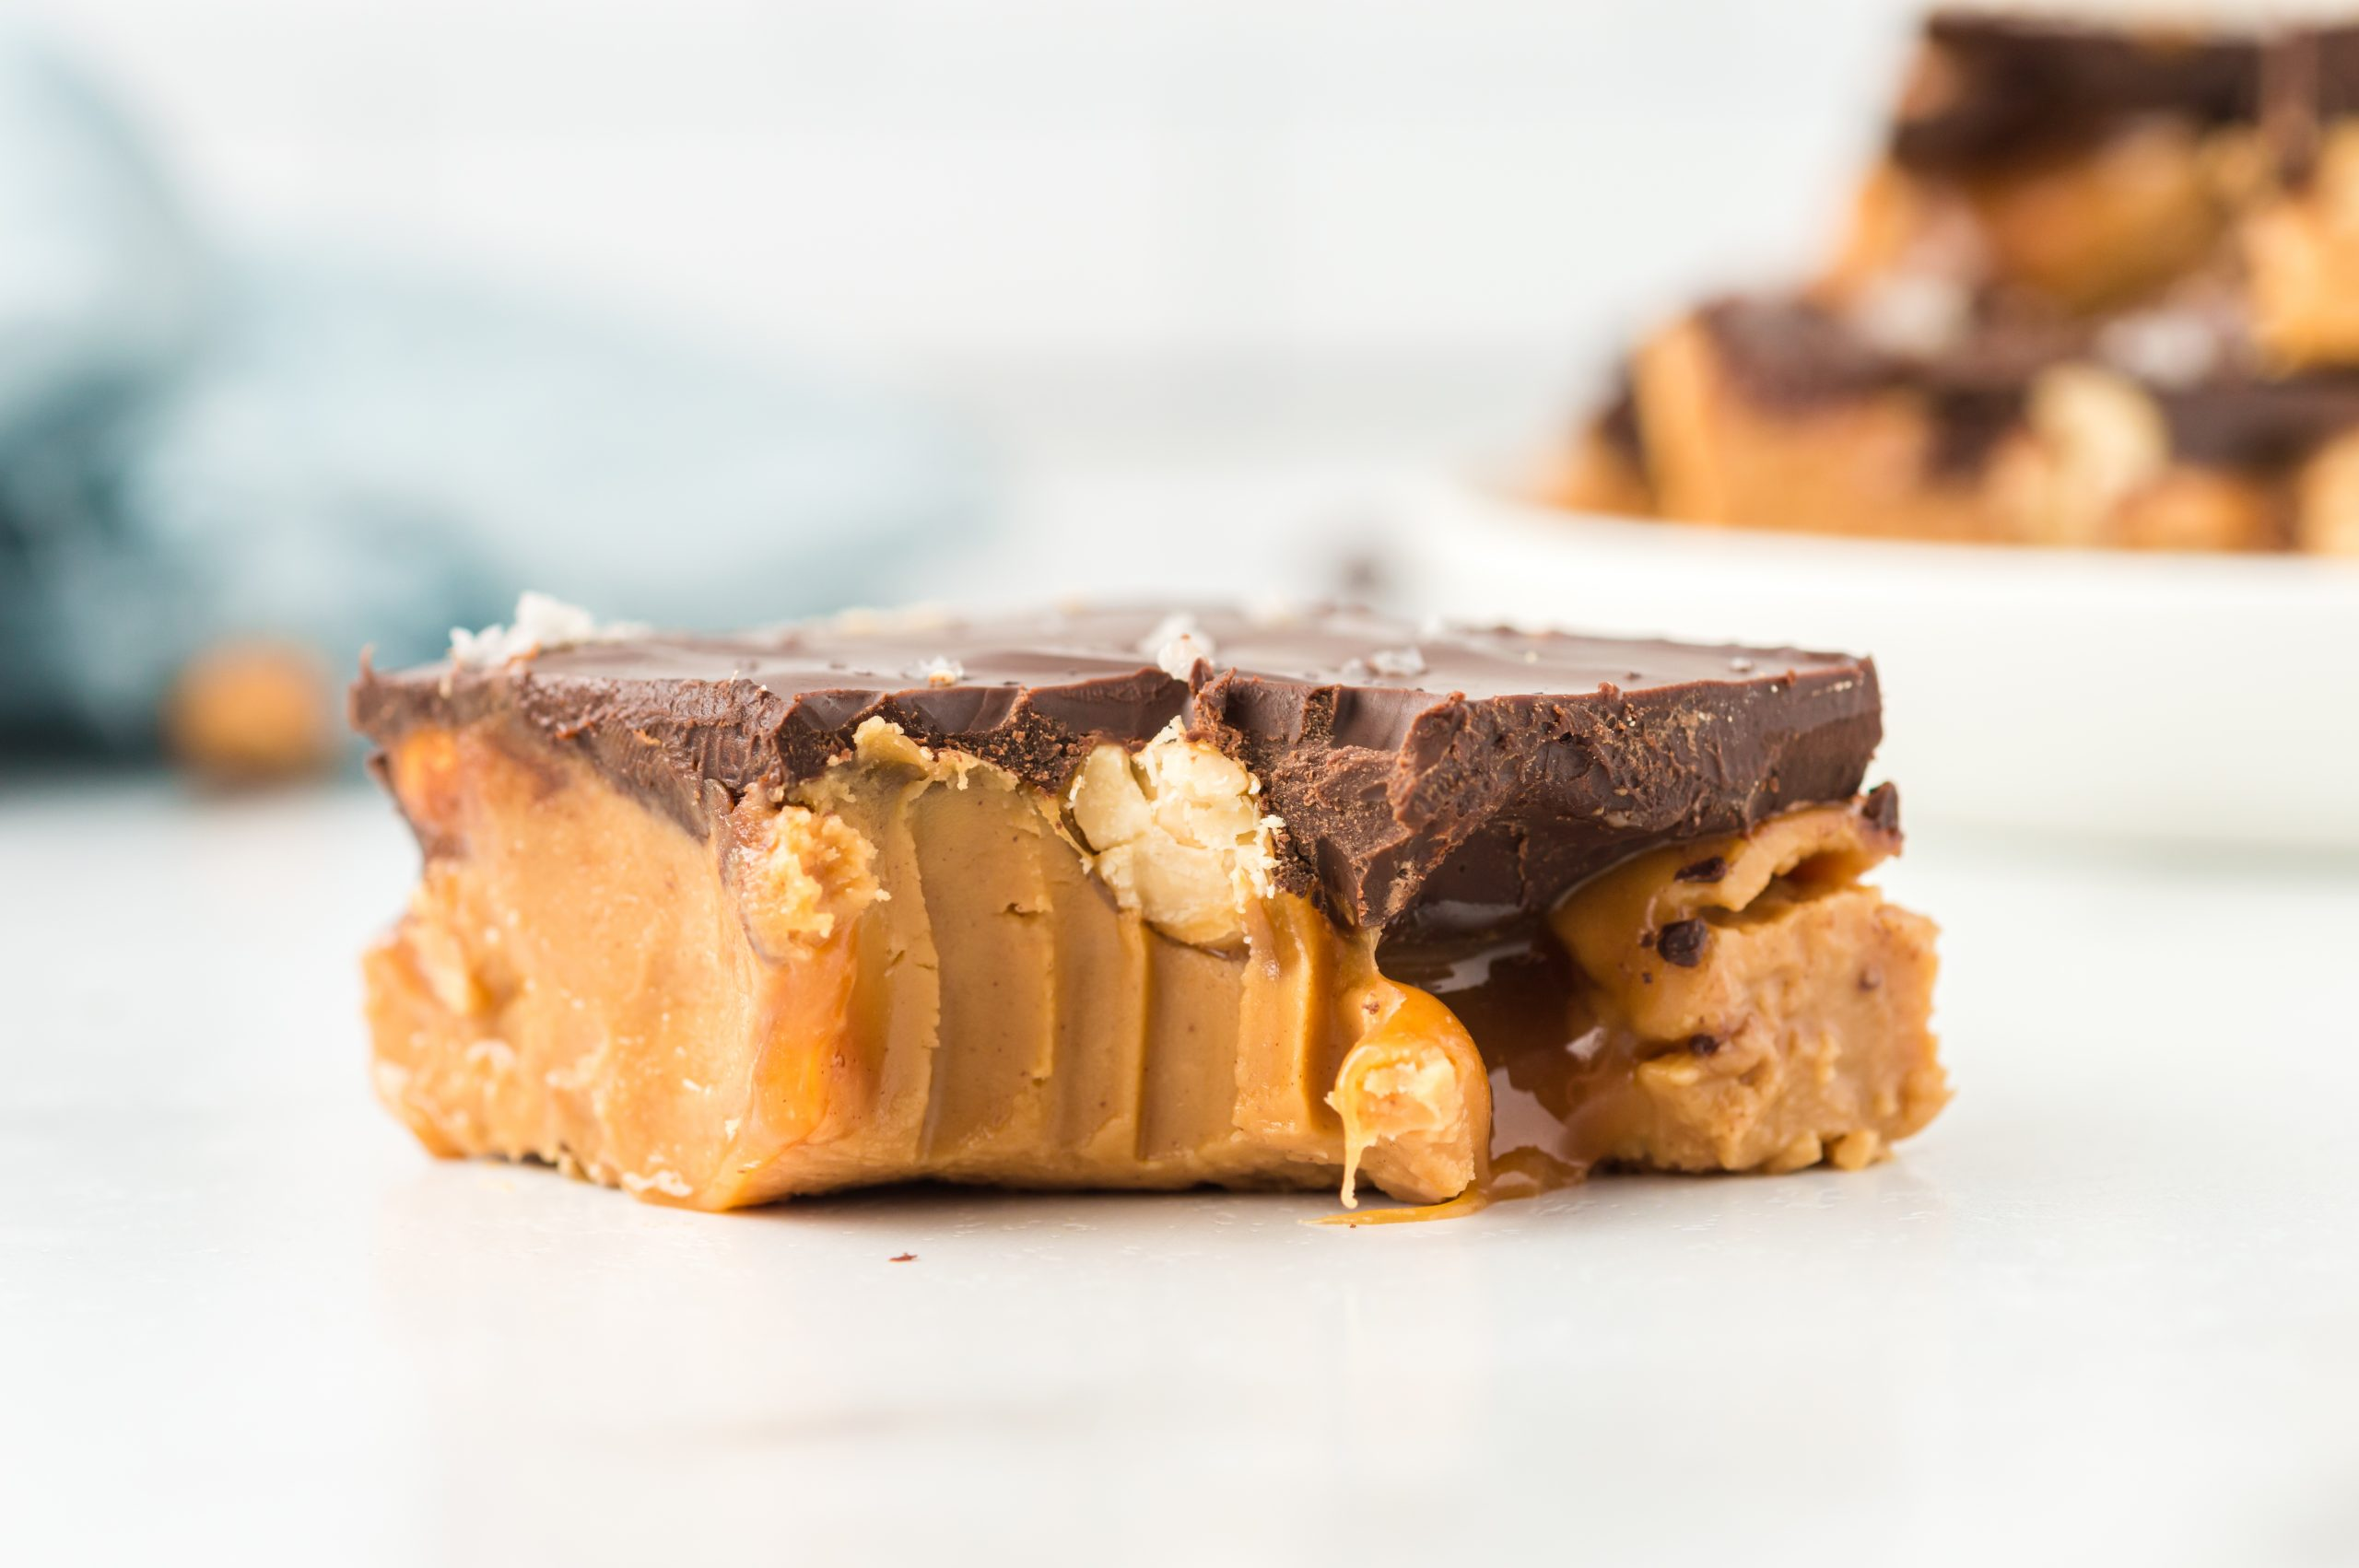 No Bake Snickers Peanut Butter Bars